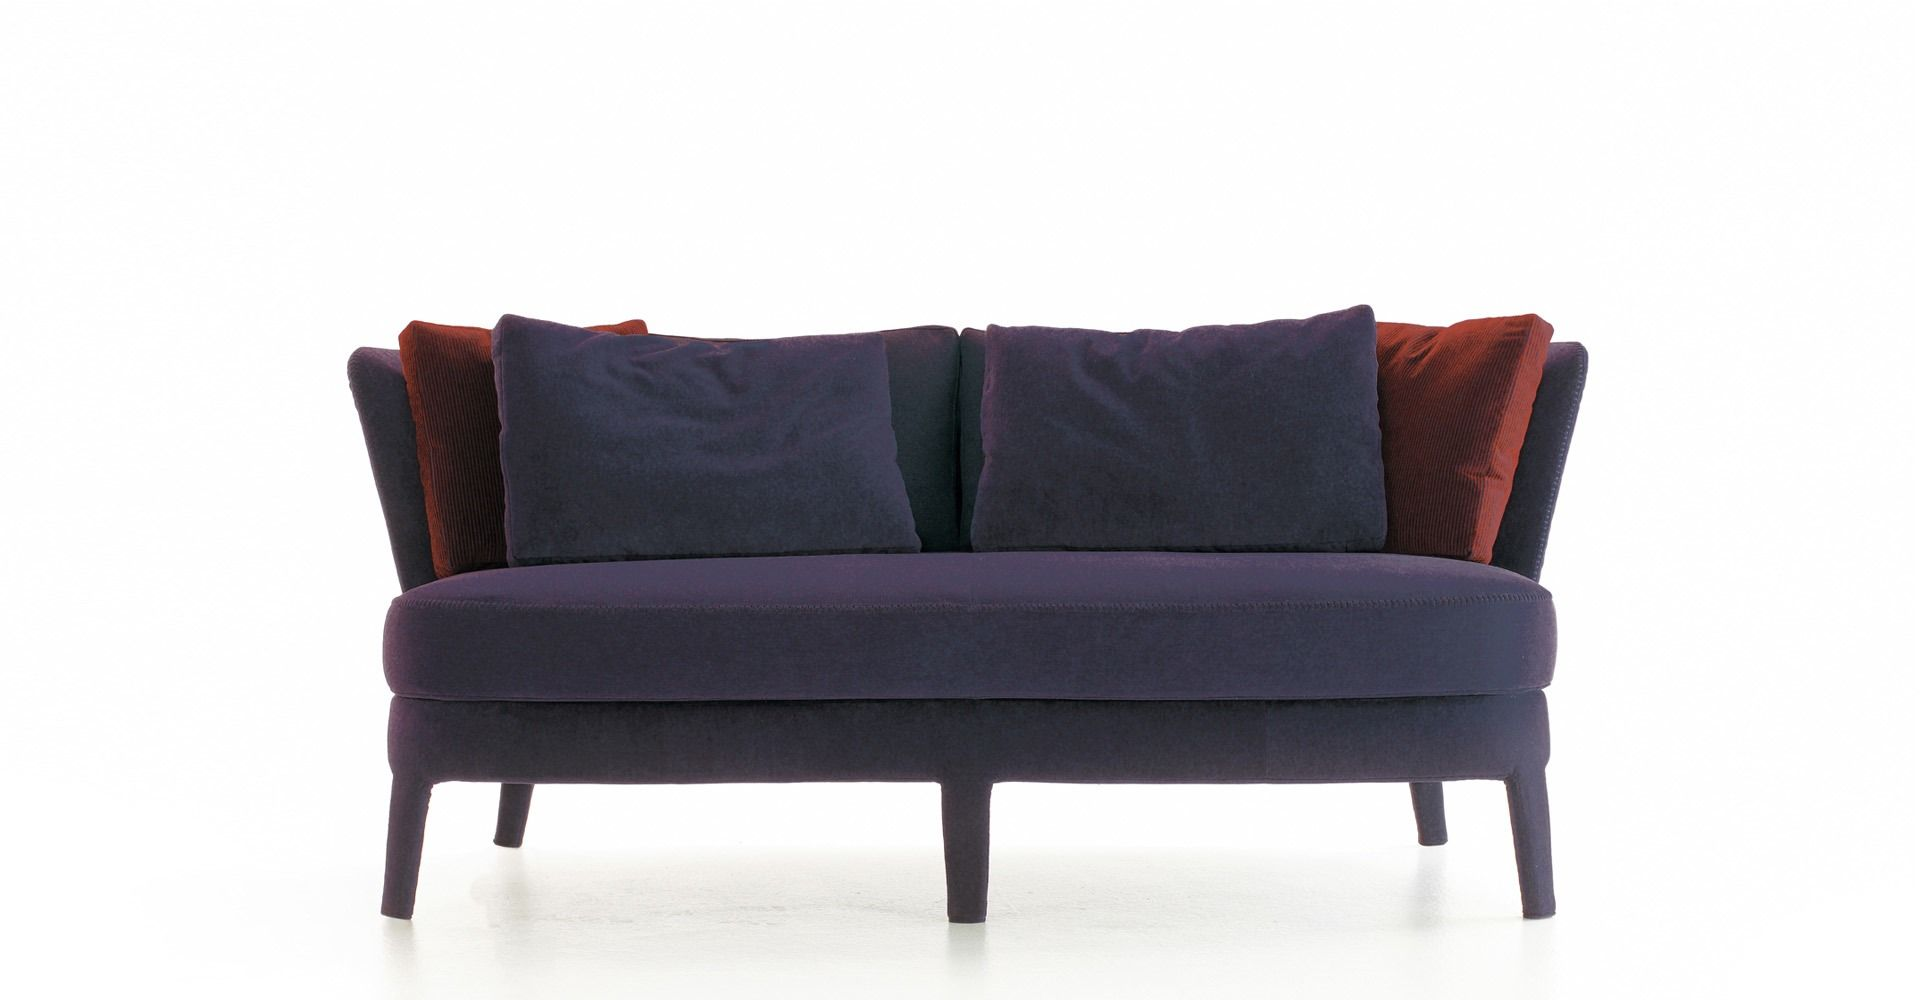 Maxalto Sofa Rund Maxalto Febo Apta Collection 1930 L0 I2 2801 Jpg 1920